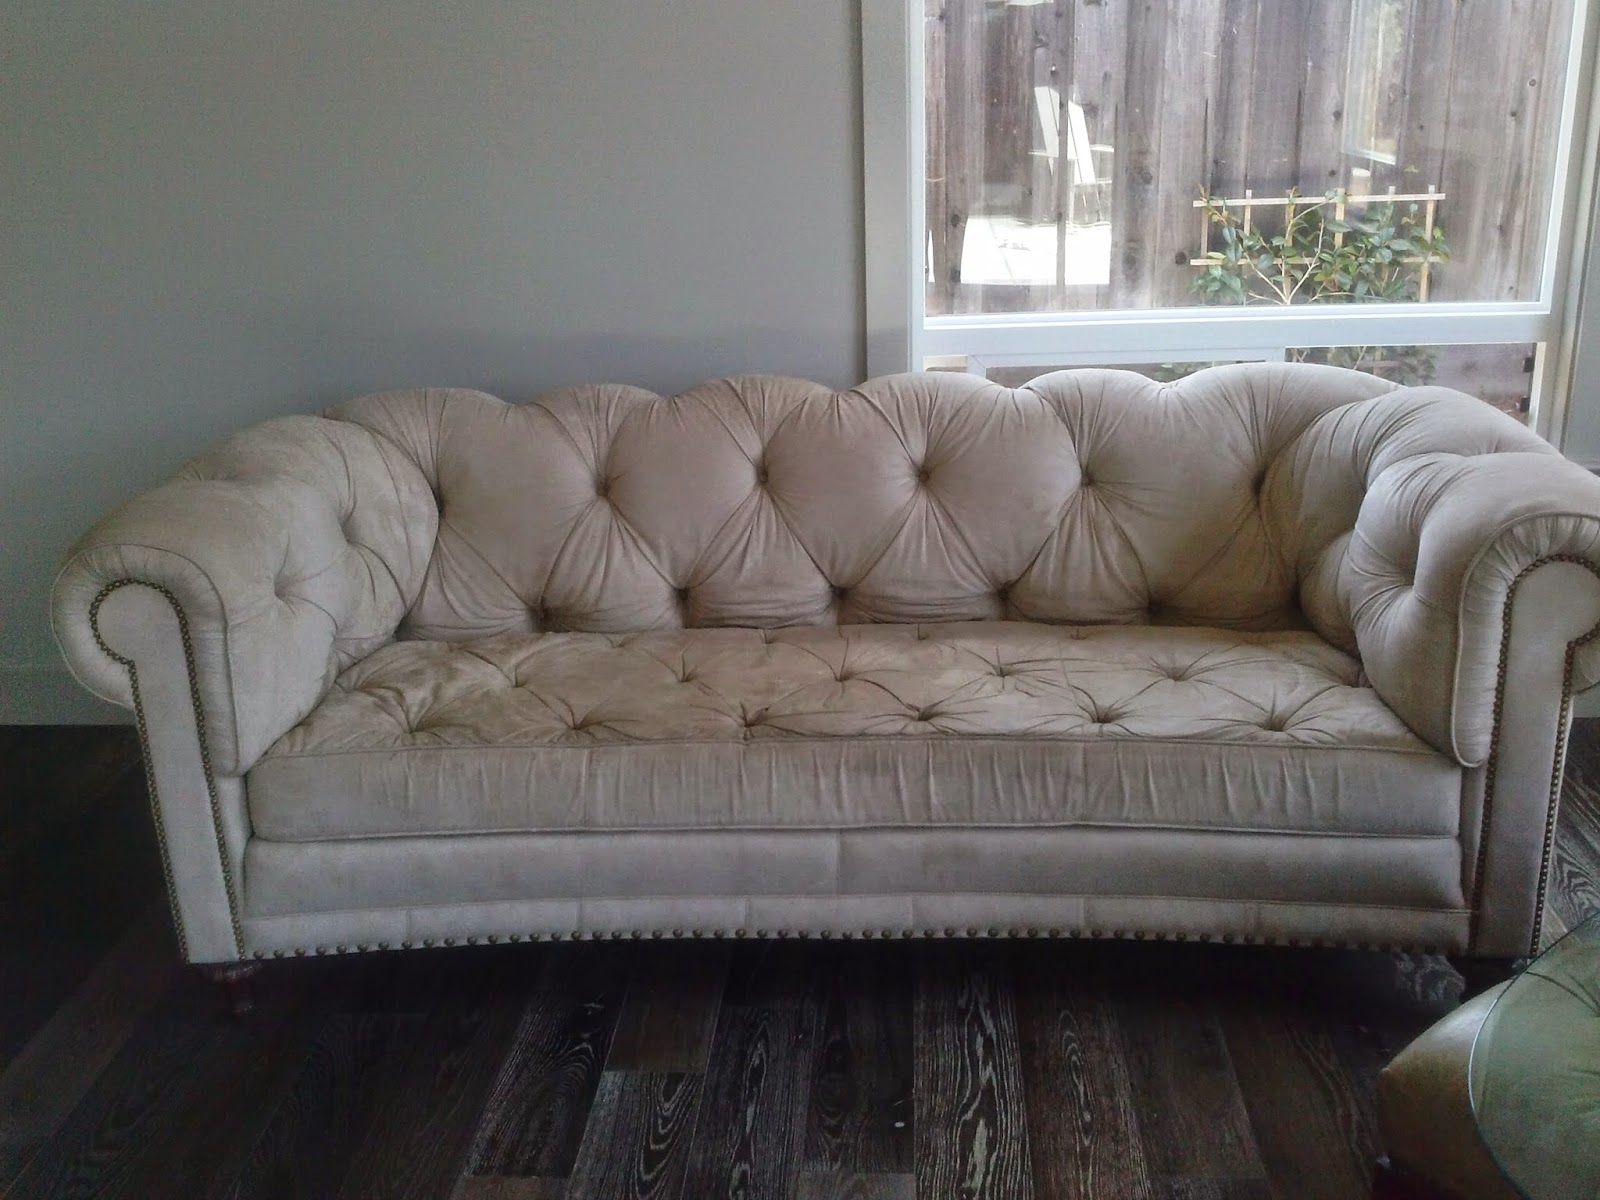 The Shape And Tufting Of This Chesterfield Sofa Are Lovely And We Were  Happy That They Wanted To Salvage It, Rather Than Purchase A New Couch.